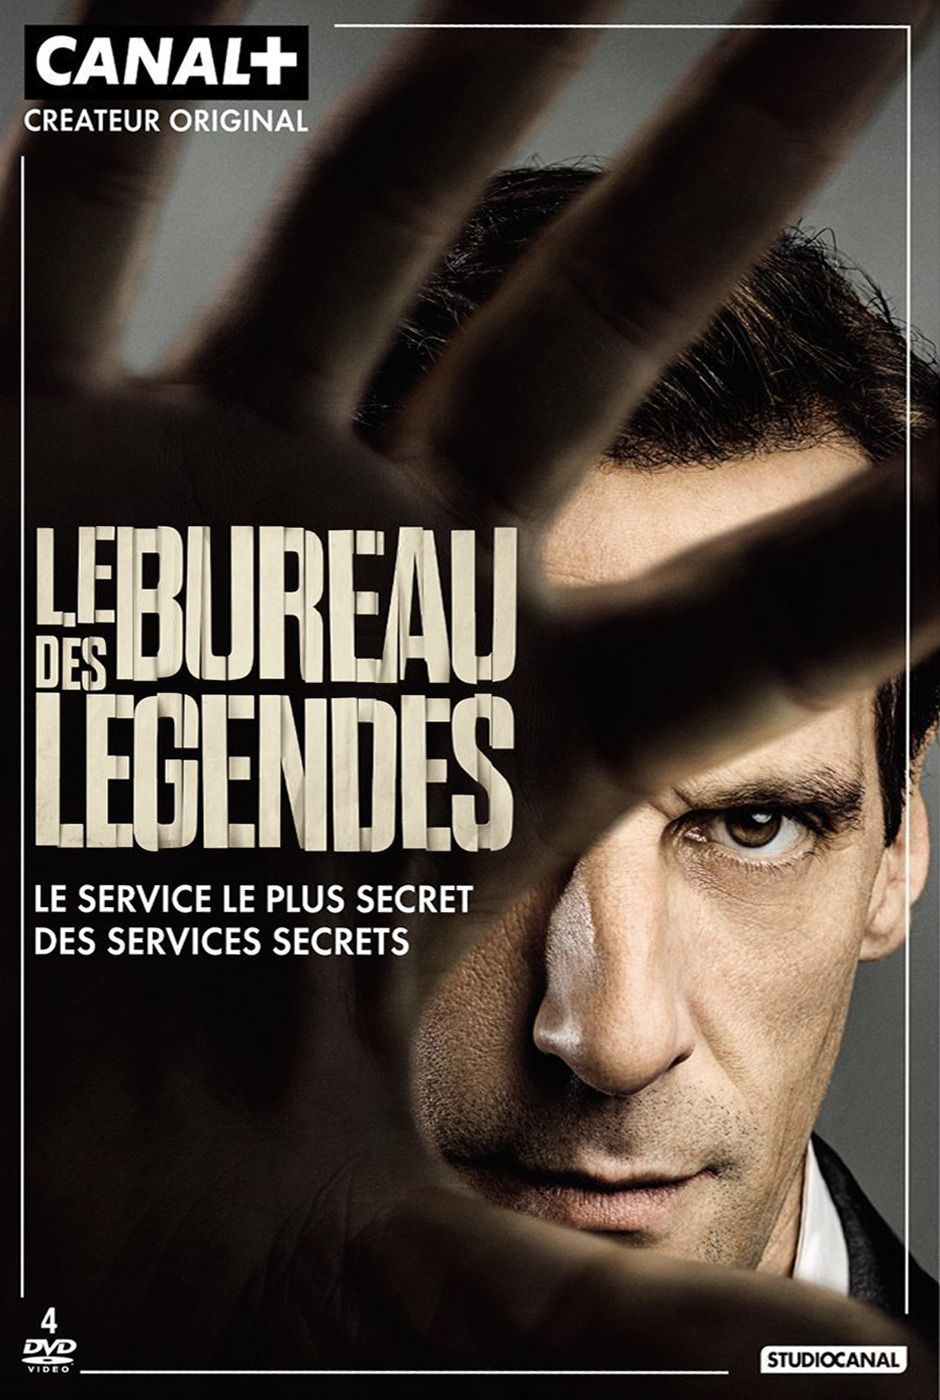 le bureau des l gendes season 1 2015 french tv series canal tv series i 39 ve seen and loved. Black Bedroom Furniture Sets. Home Design Ideas